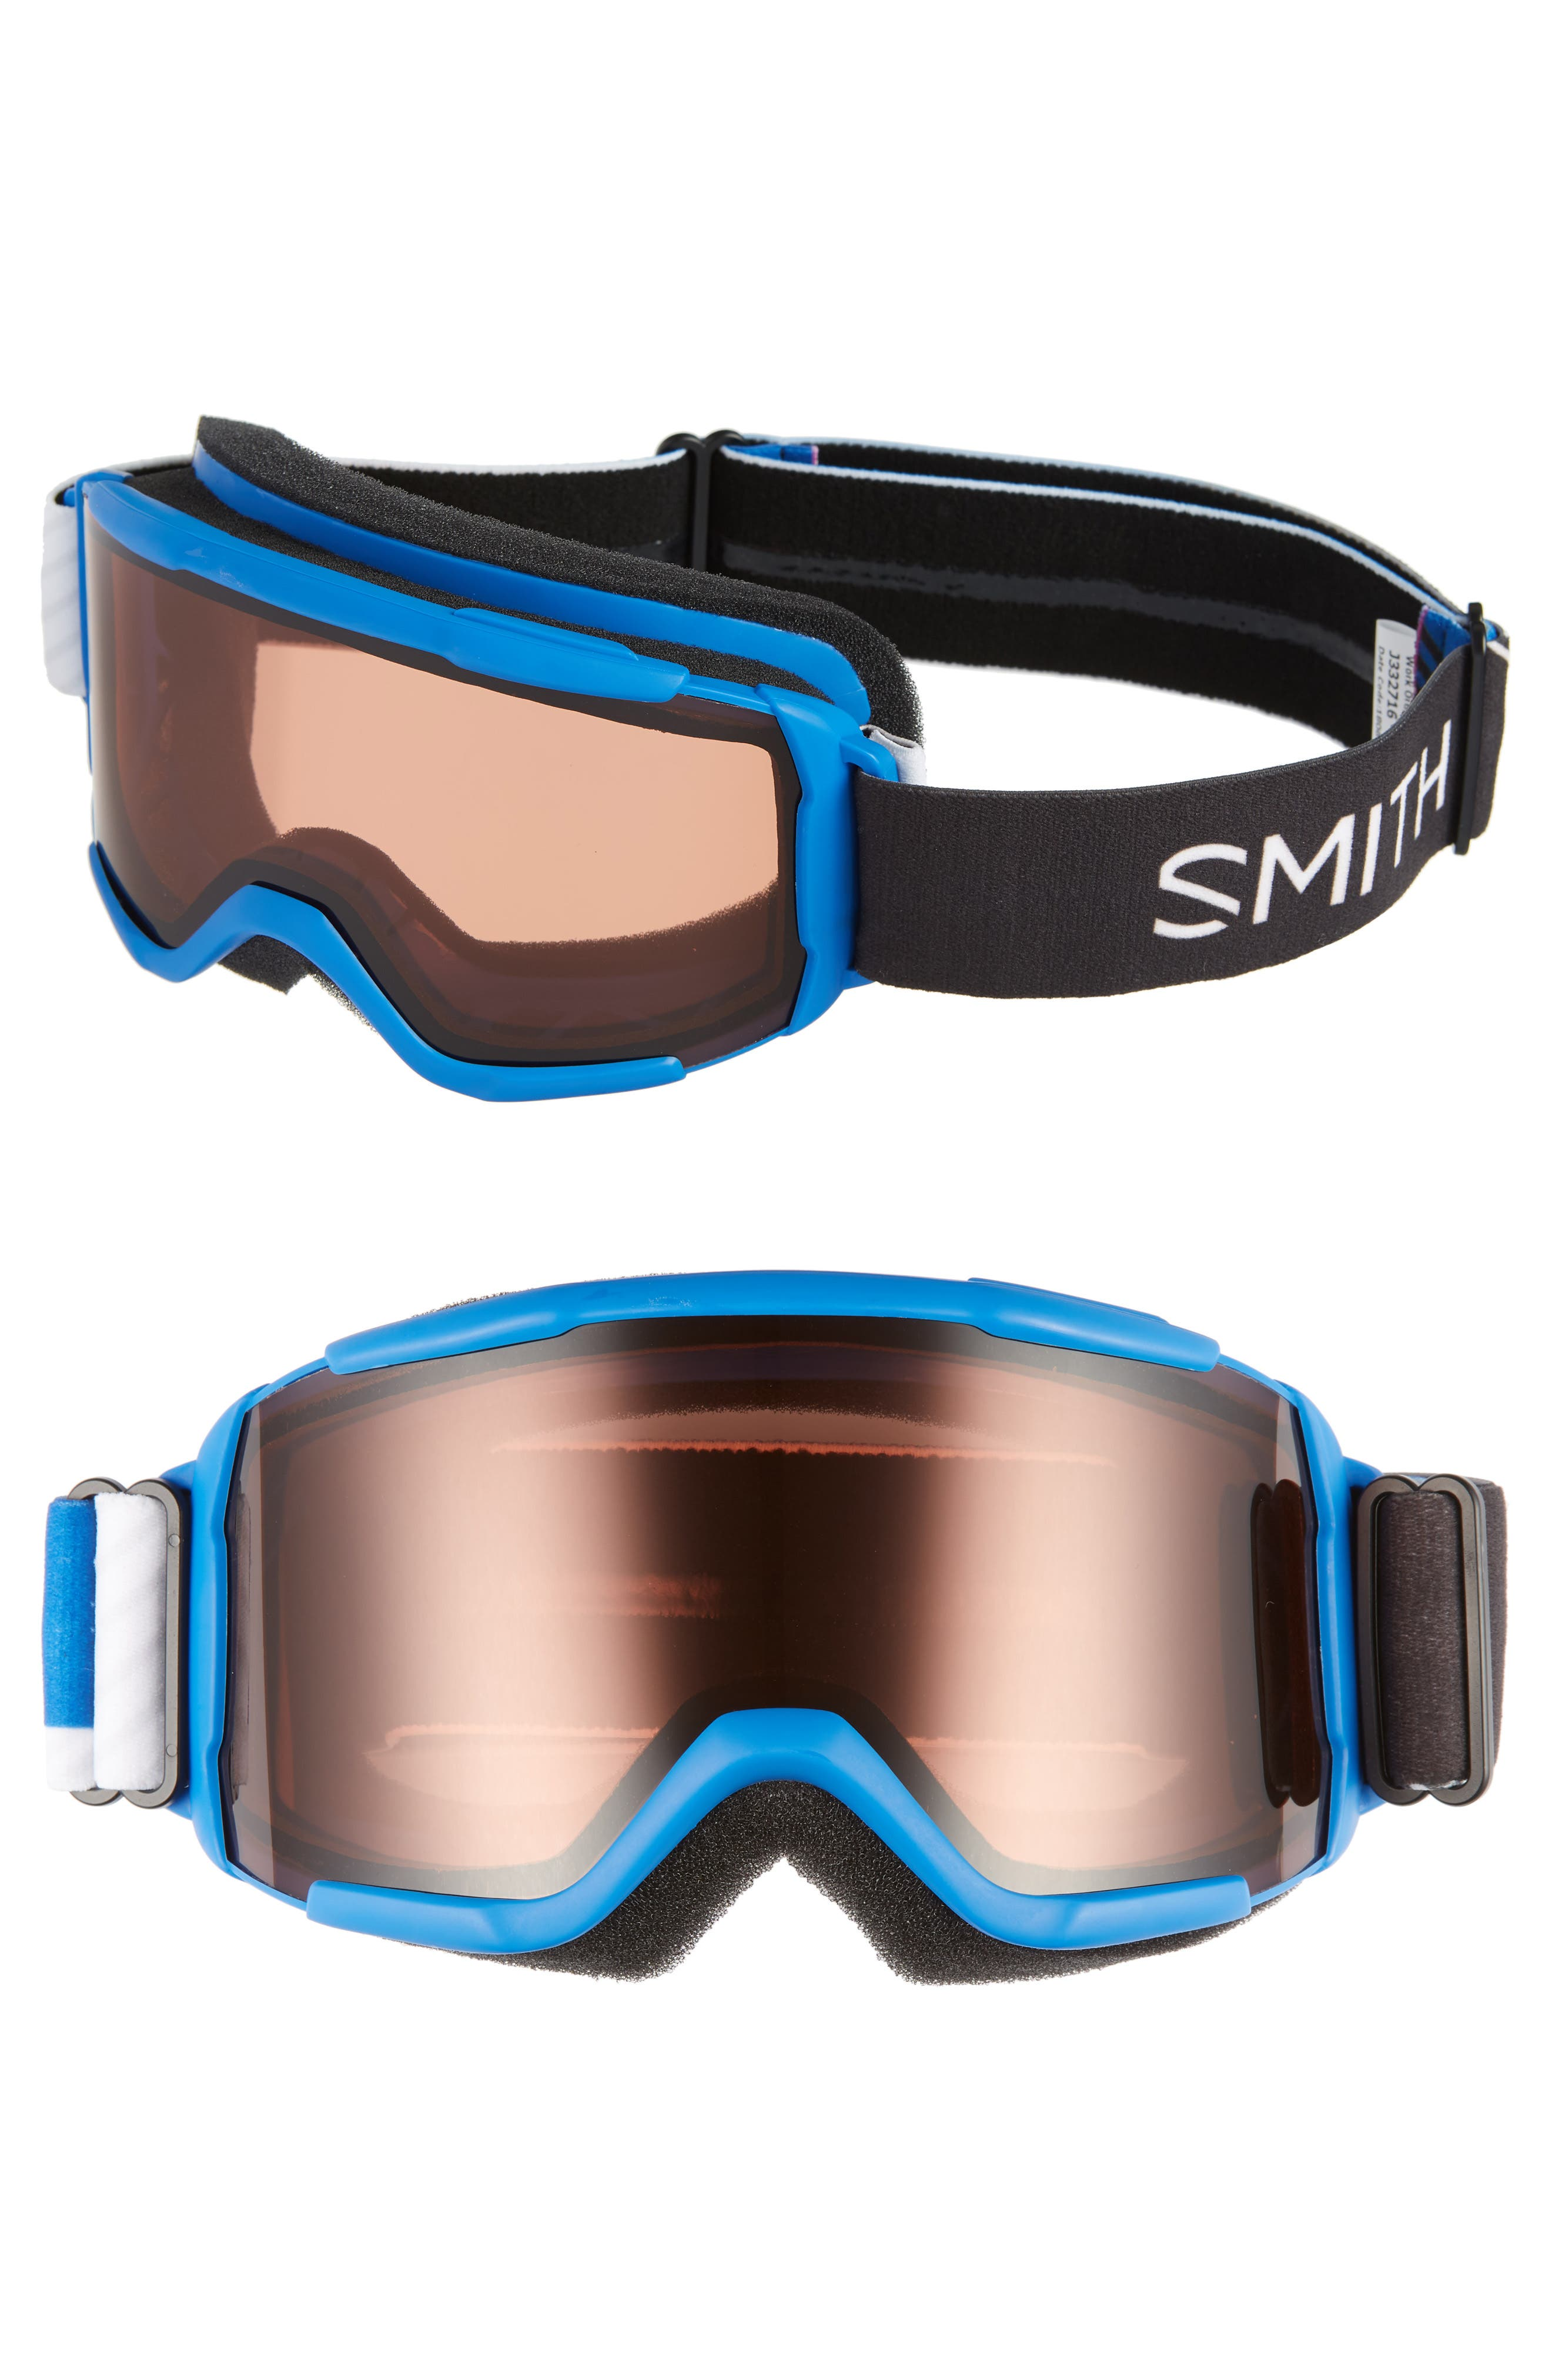 Daredevil 170mm Snow Goggles,                             Main thumbnail 1, color,                             BLUE STRIKE